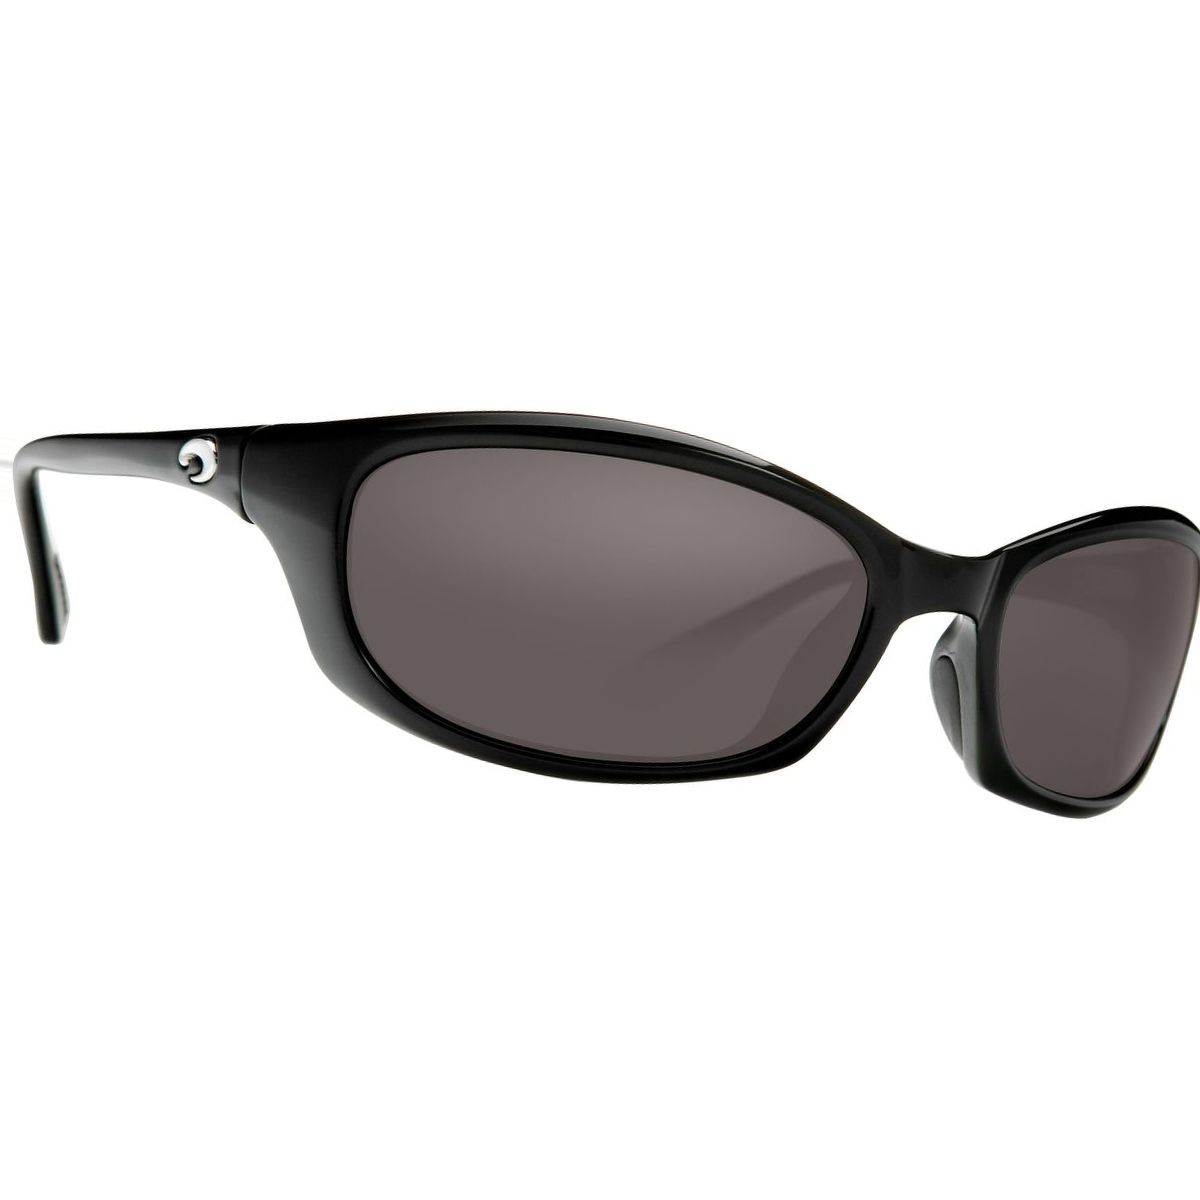 Costa Harpoon 580P Polarized Sunglasses - Women's